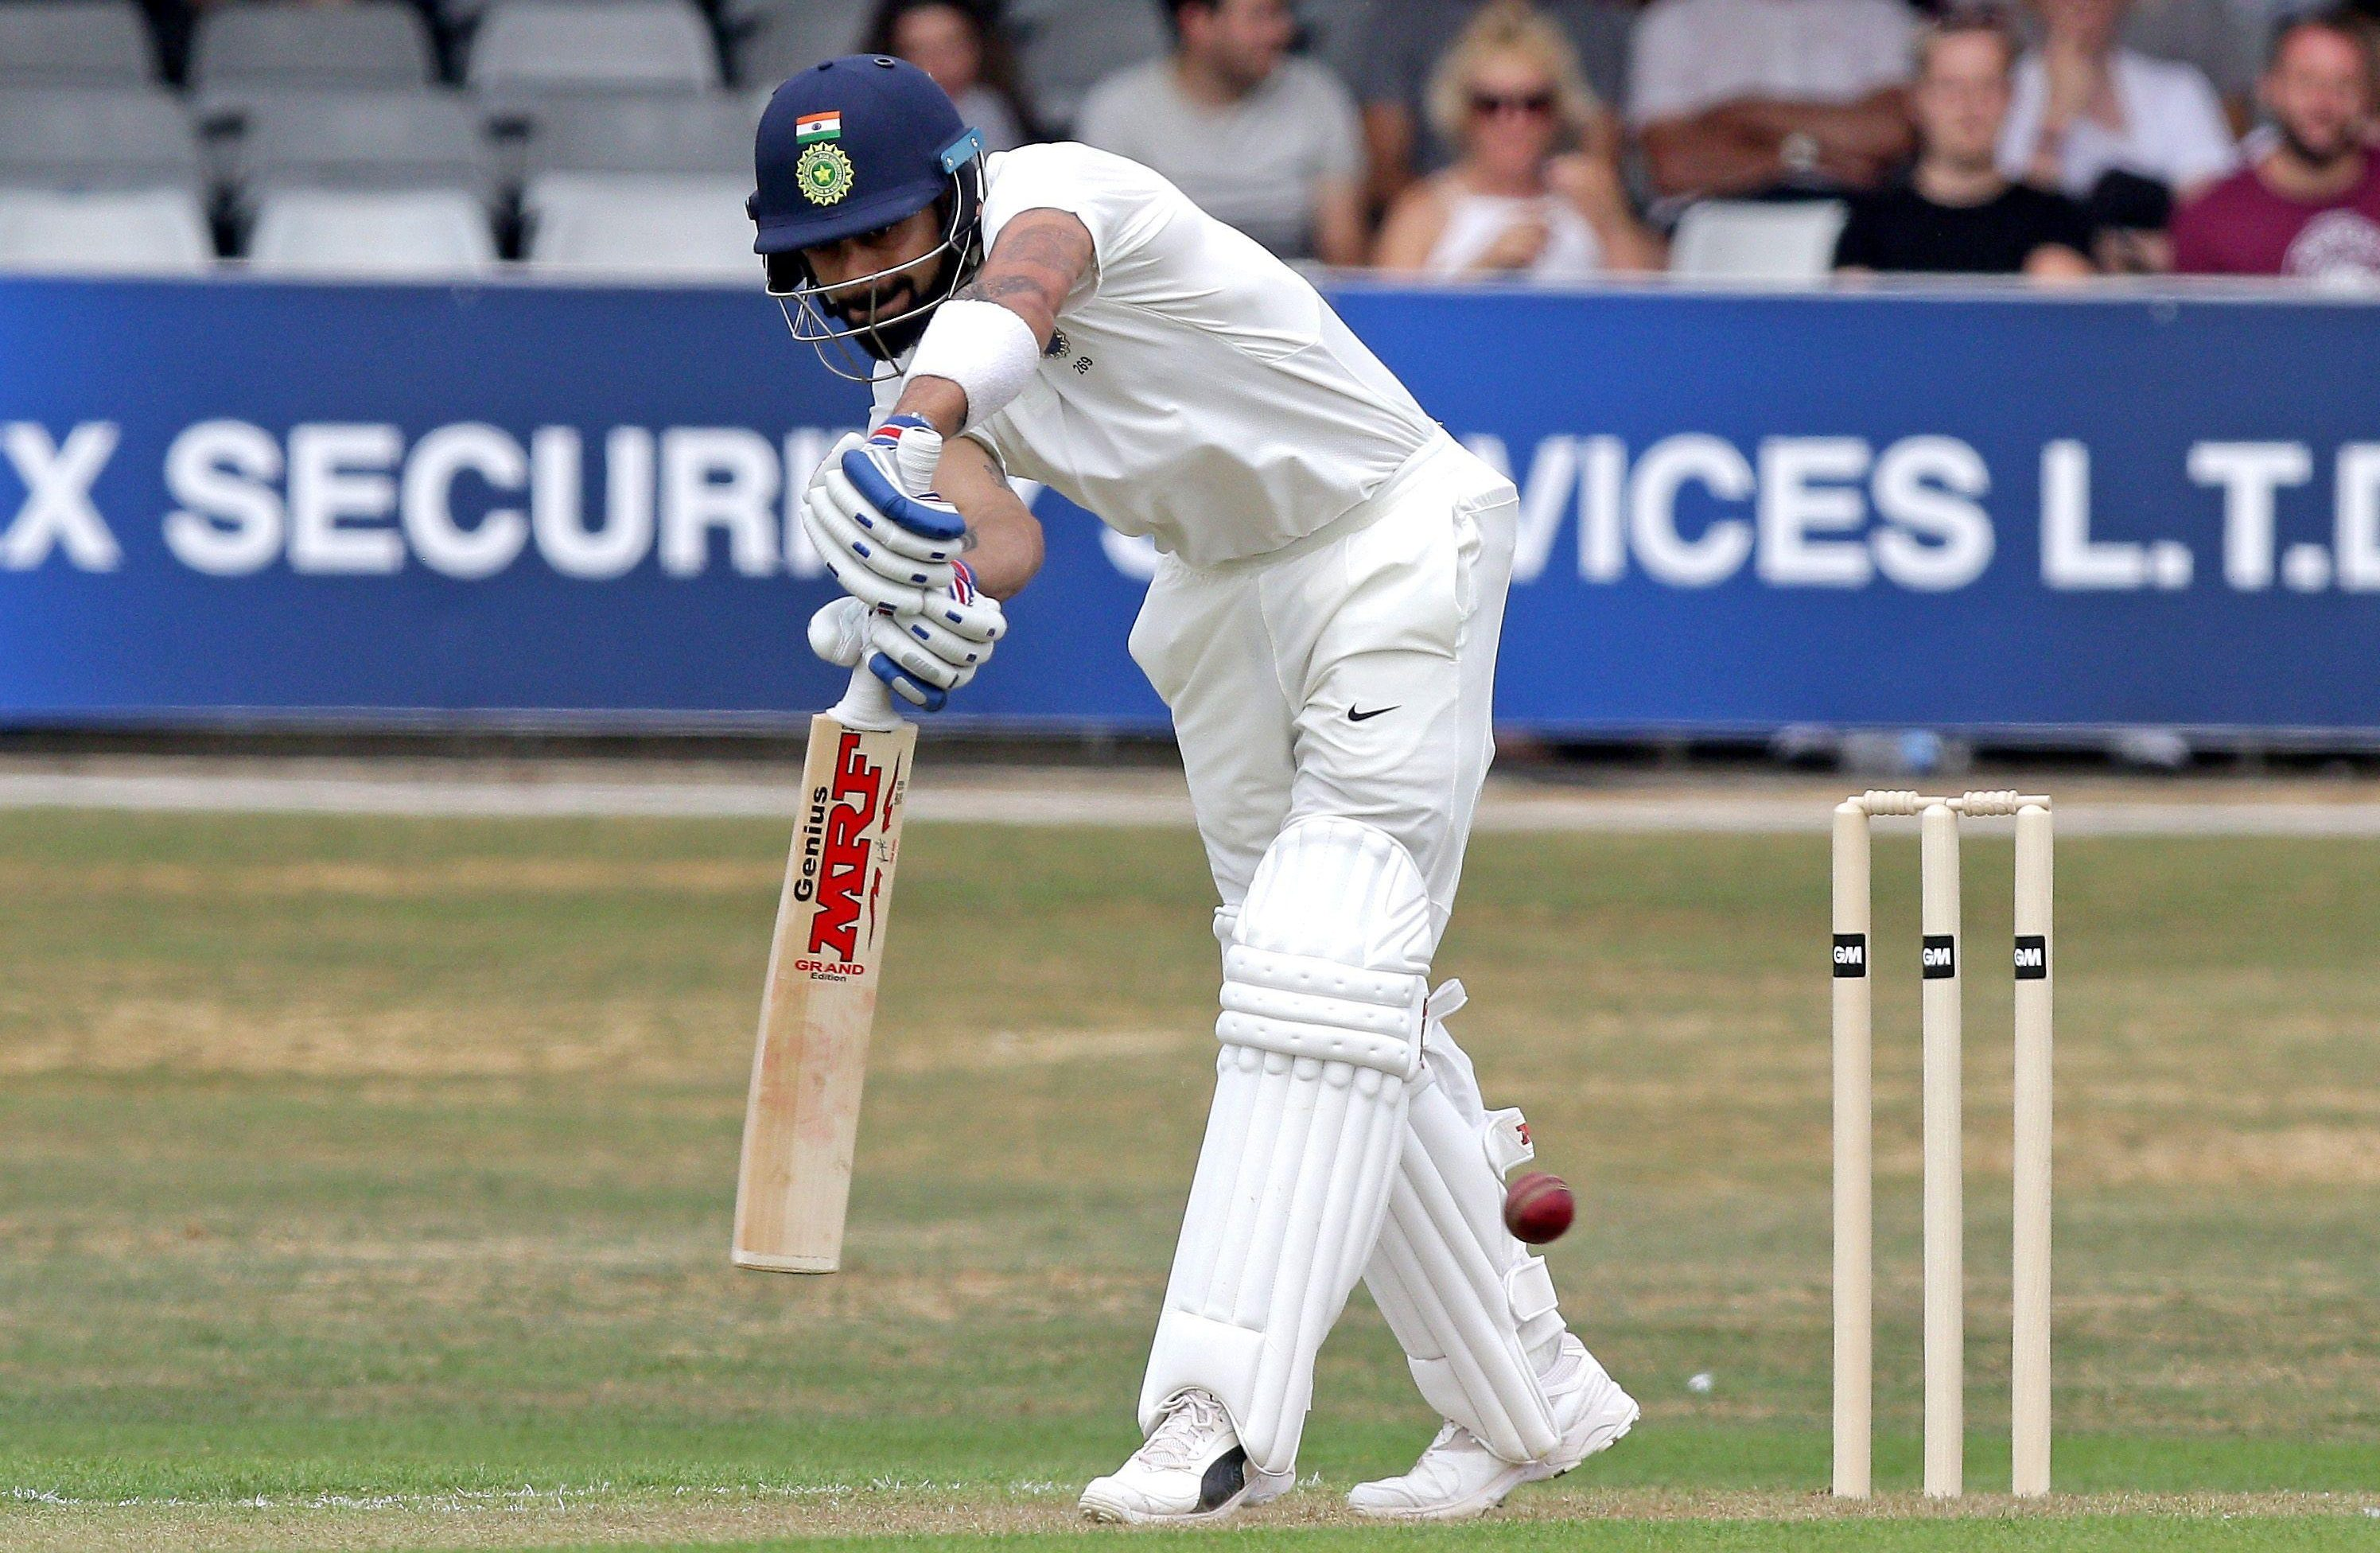 Virat Kohli leads the No 1 Test team in the world in India